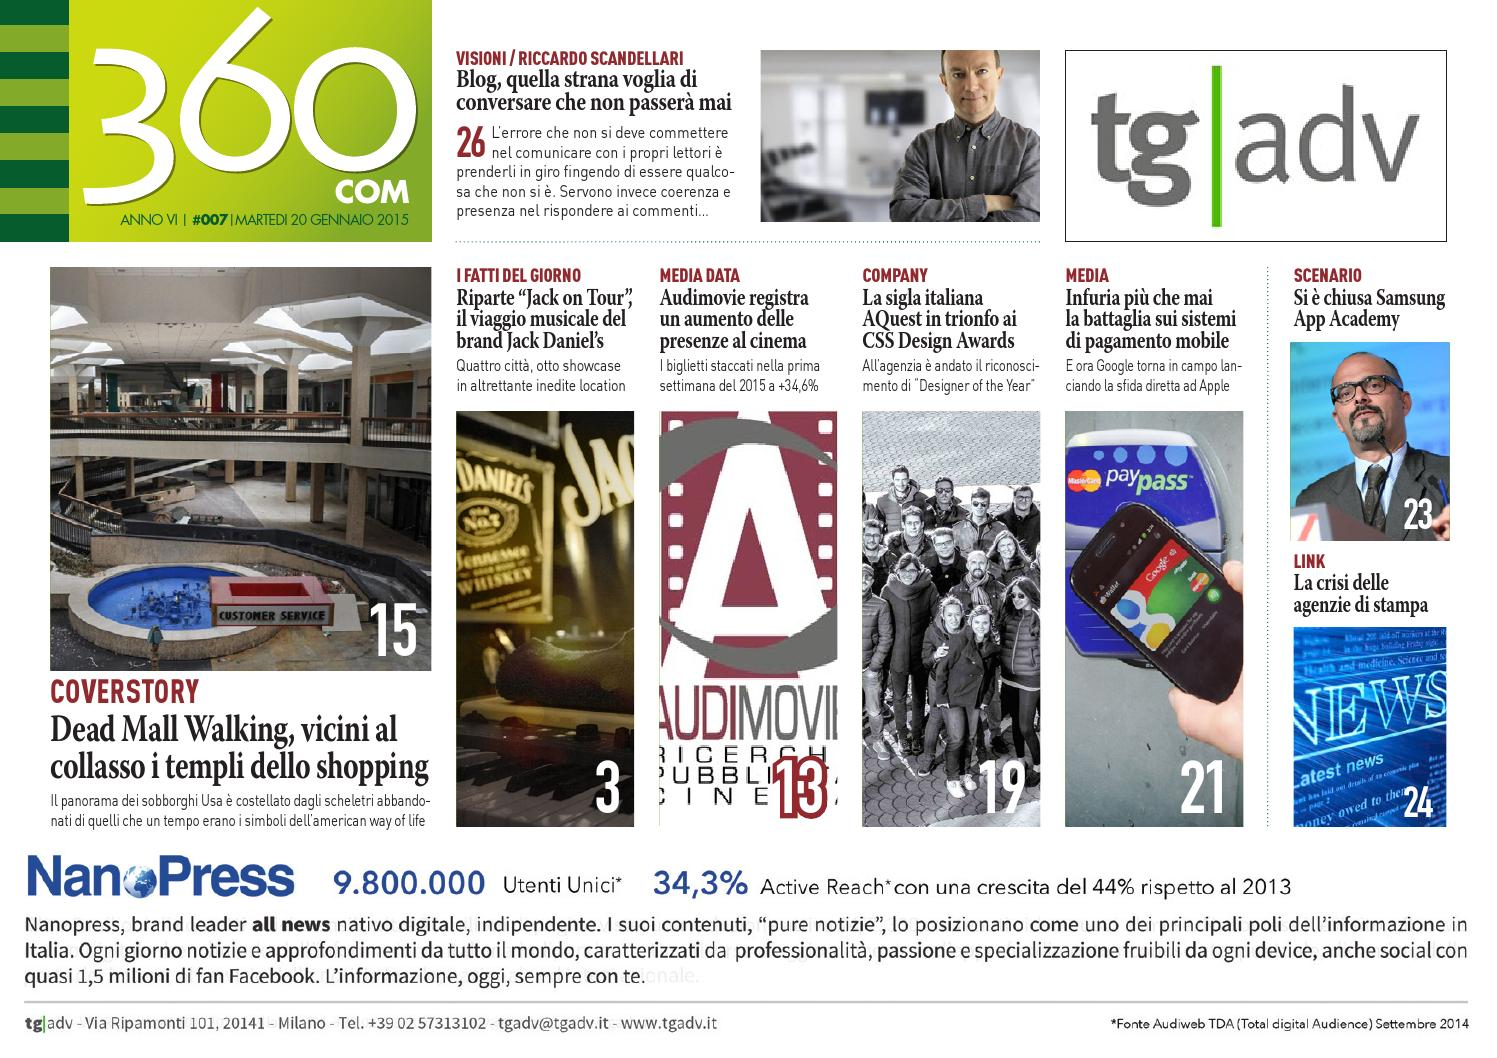 360com007 2015 by Growing Consulting&Media issuu